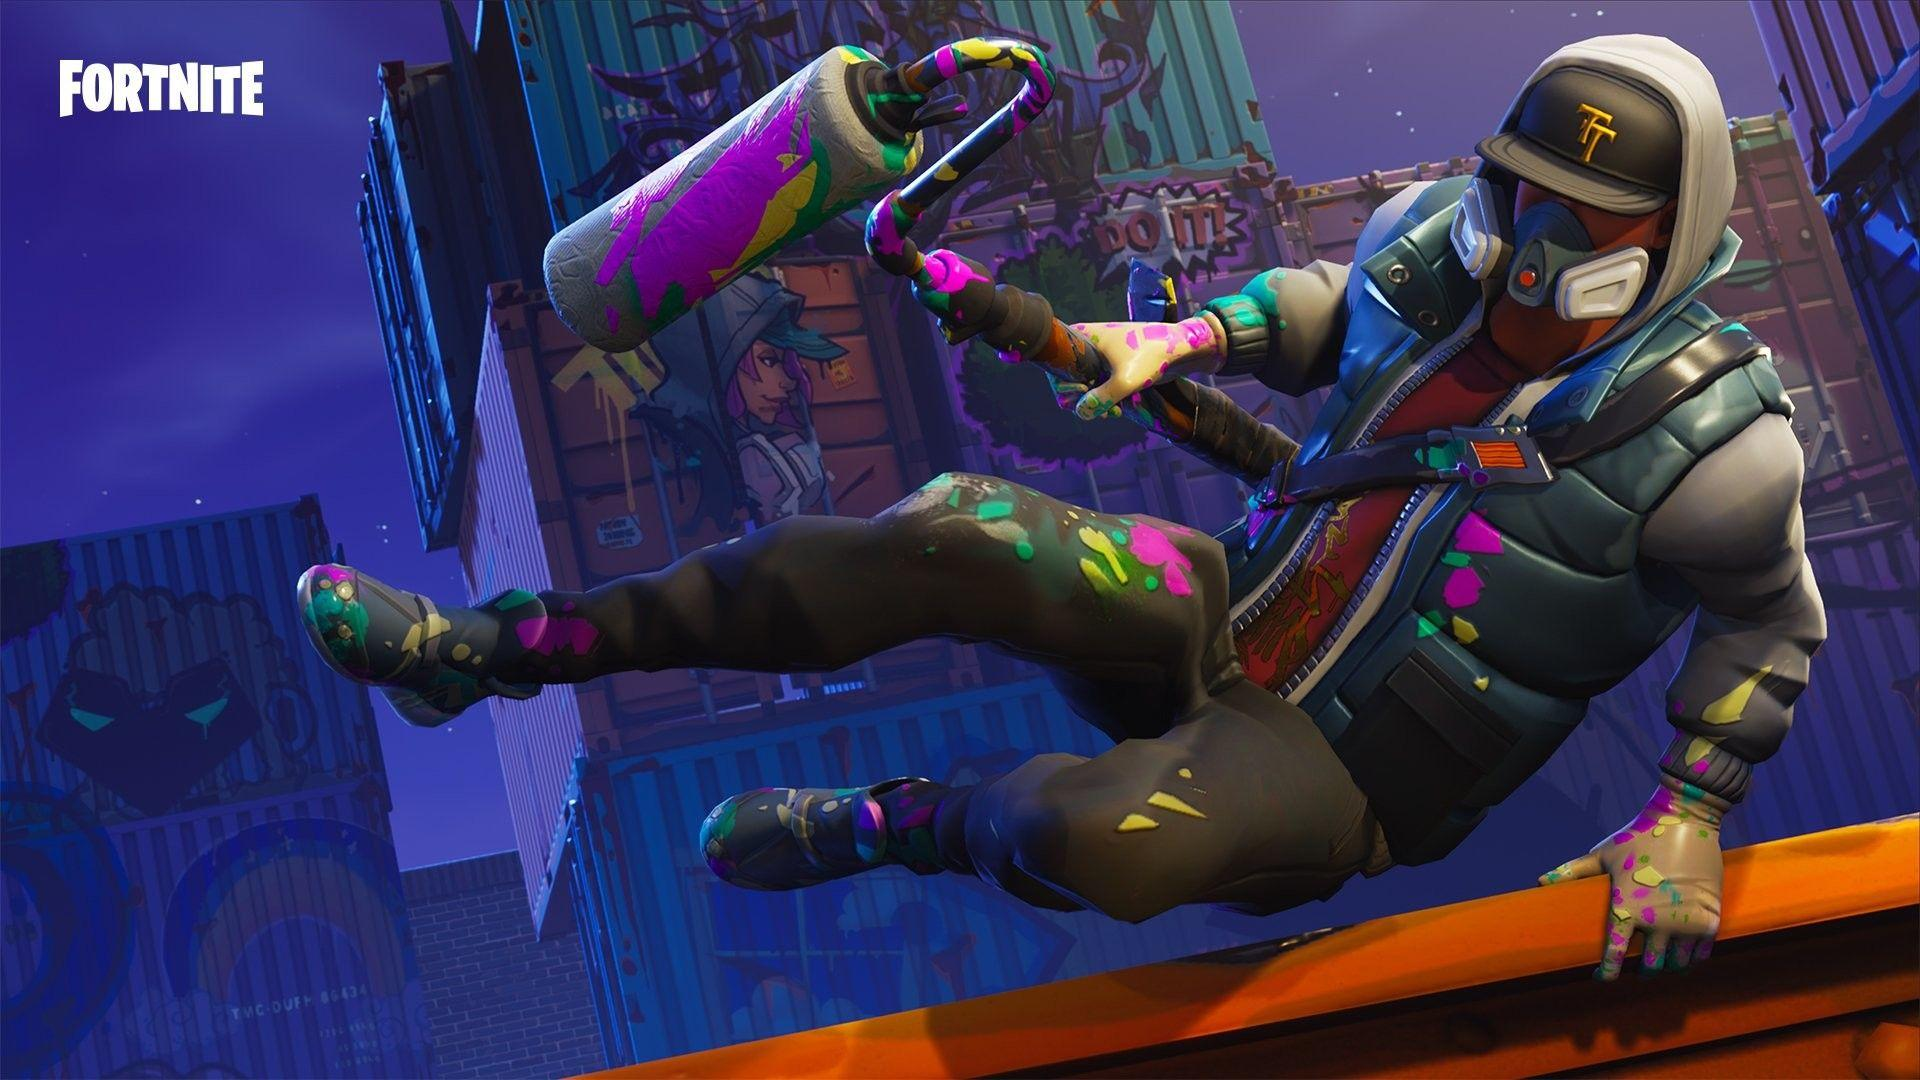 Fortnite Battle Royale Abstrakt Skin, HD Games, 4k Wallpapers